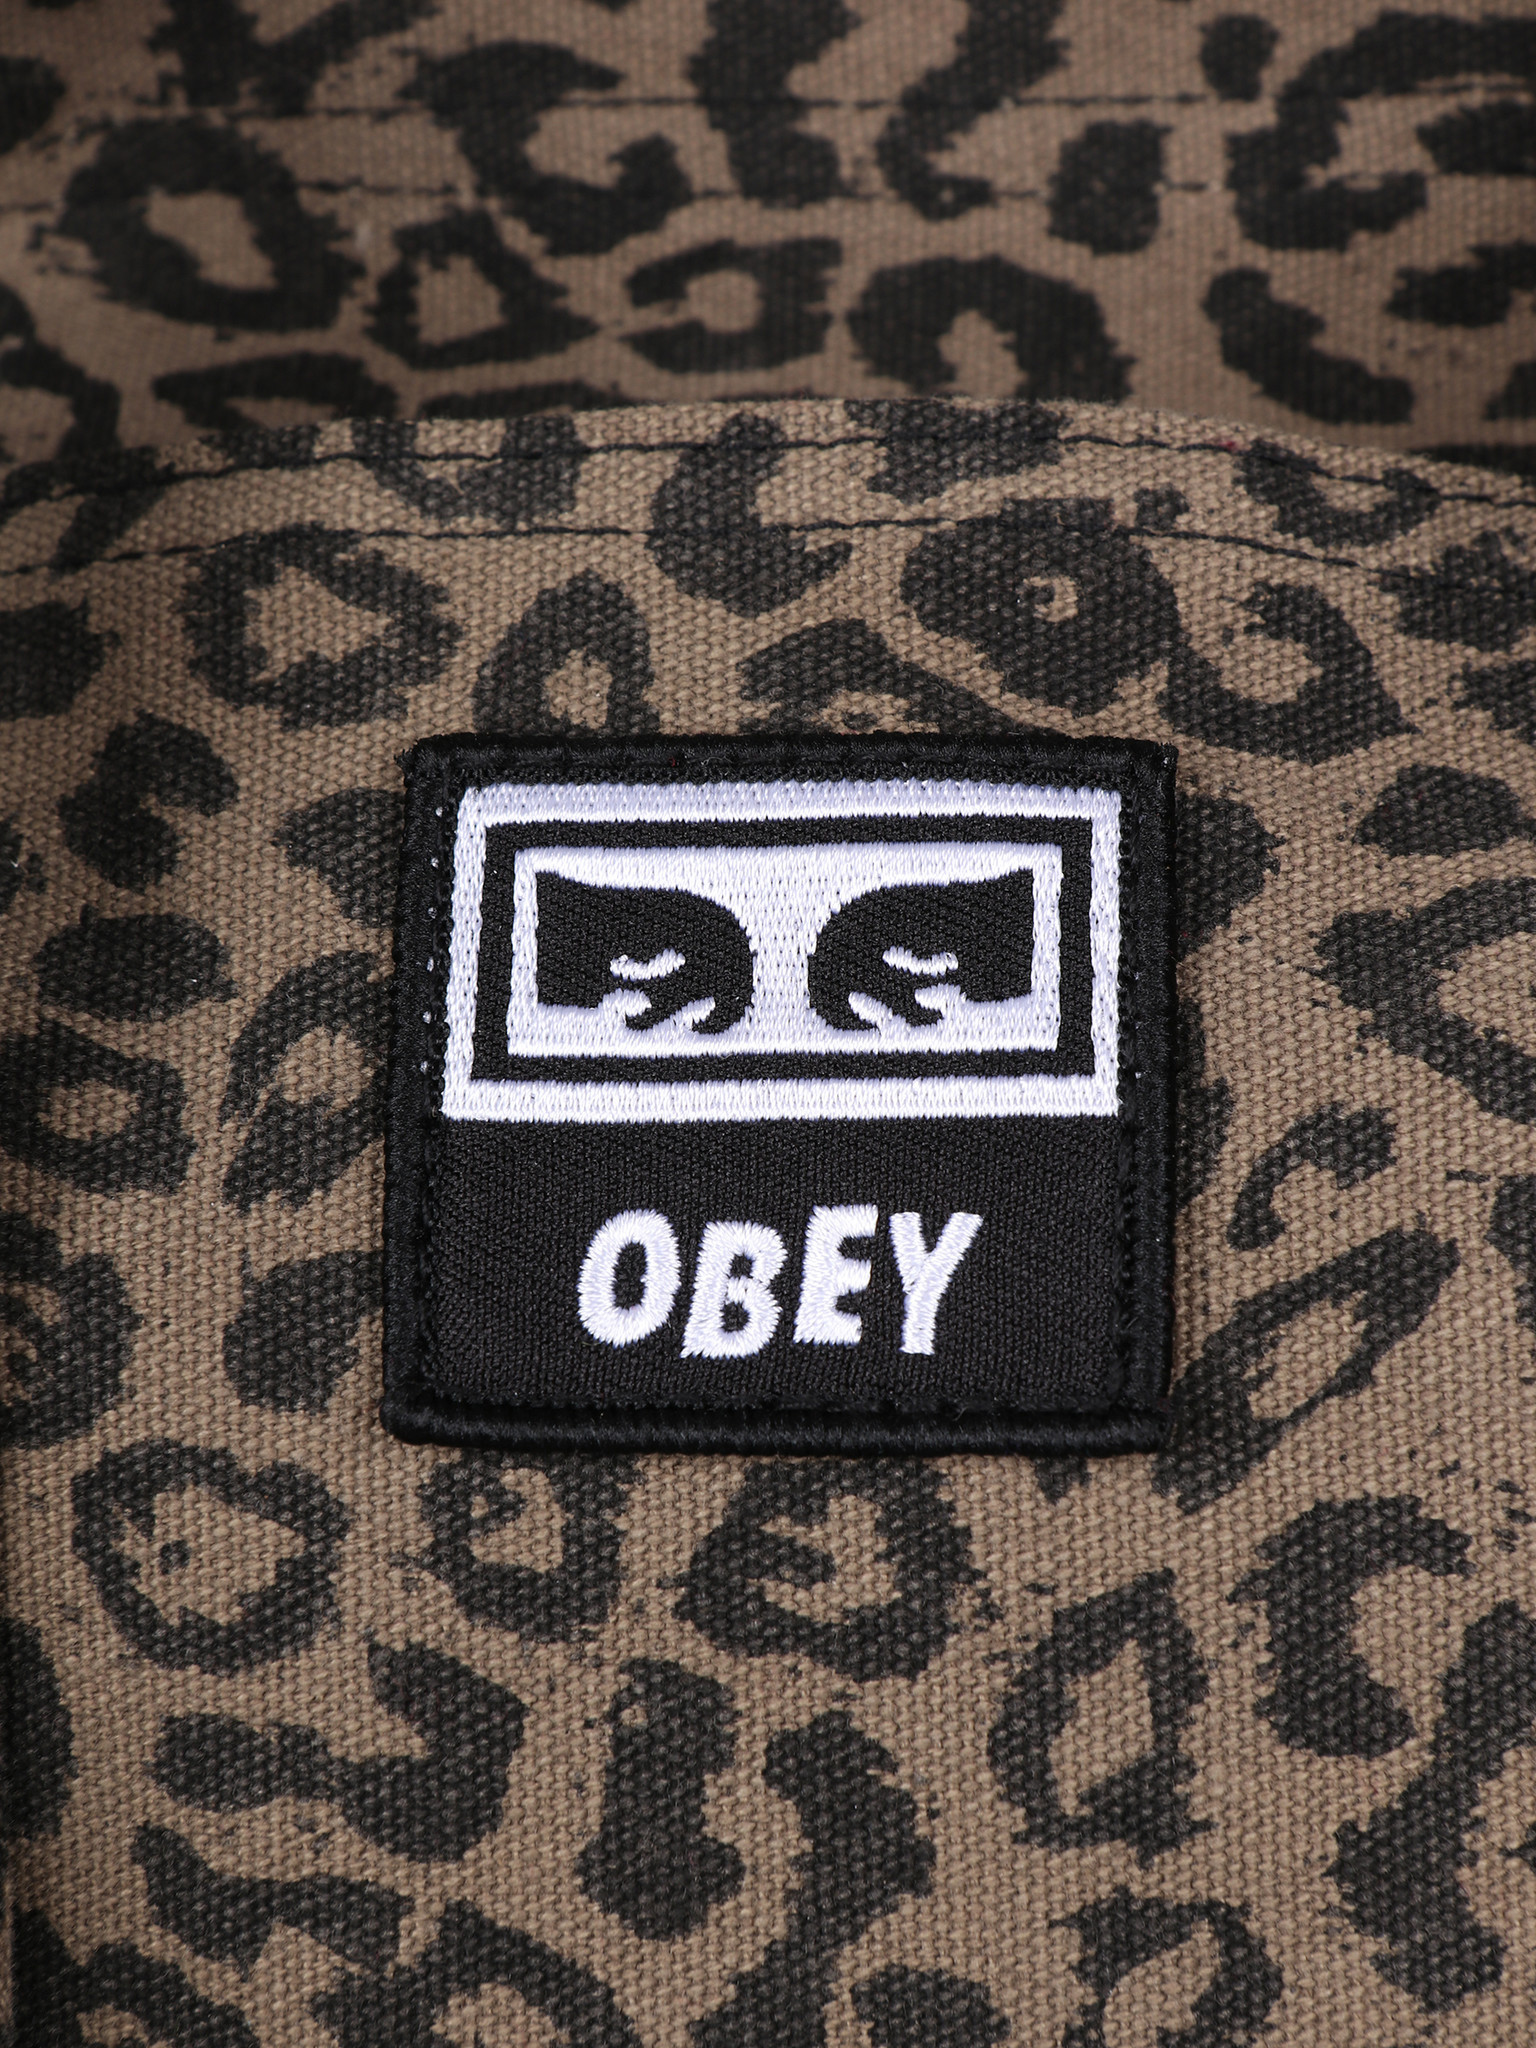 Obey Obey Wasted Tote Bag LEO 100010103